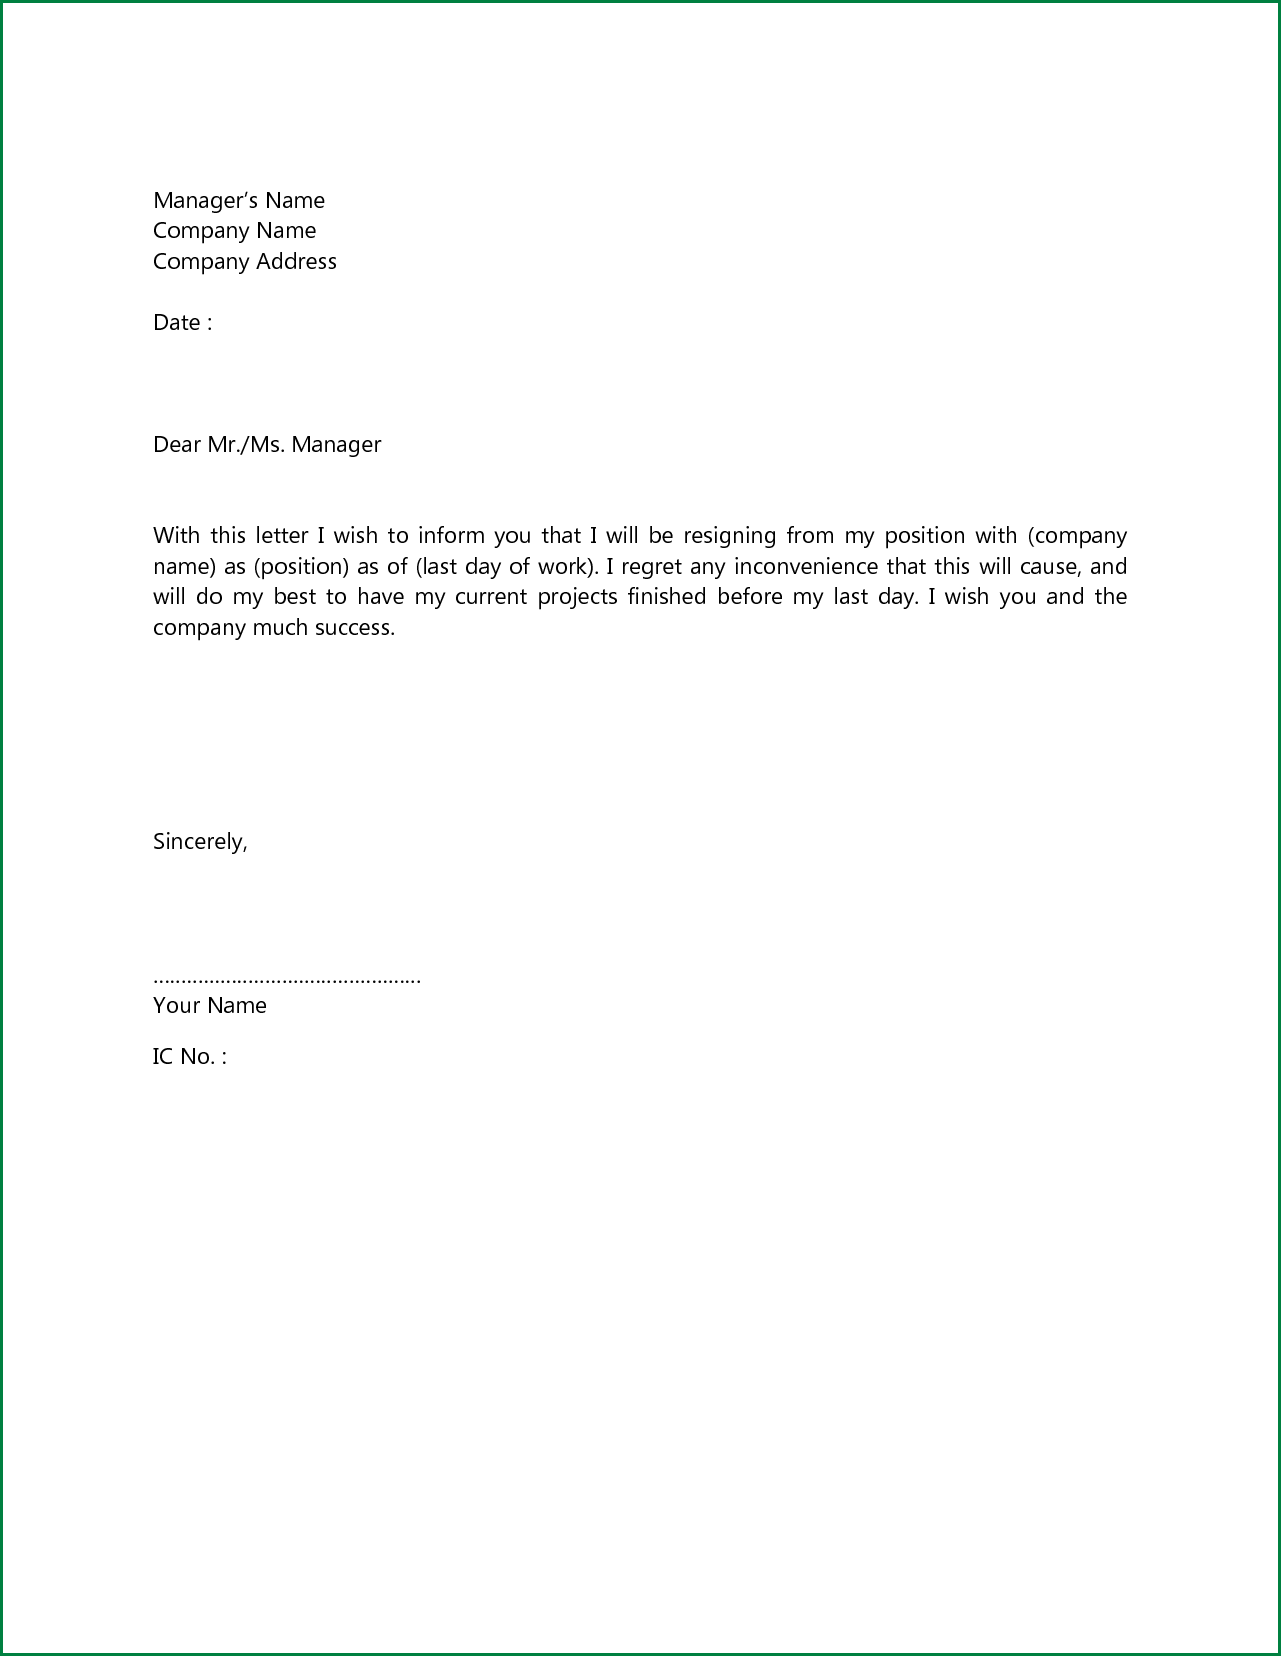 basic resignation letter samples Yeni.mescale.co